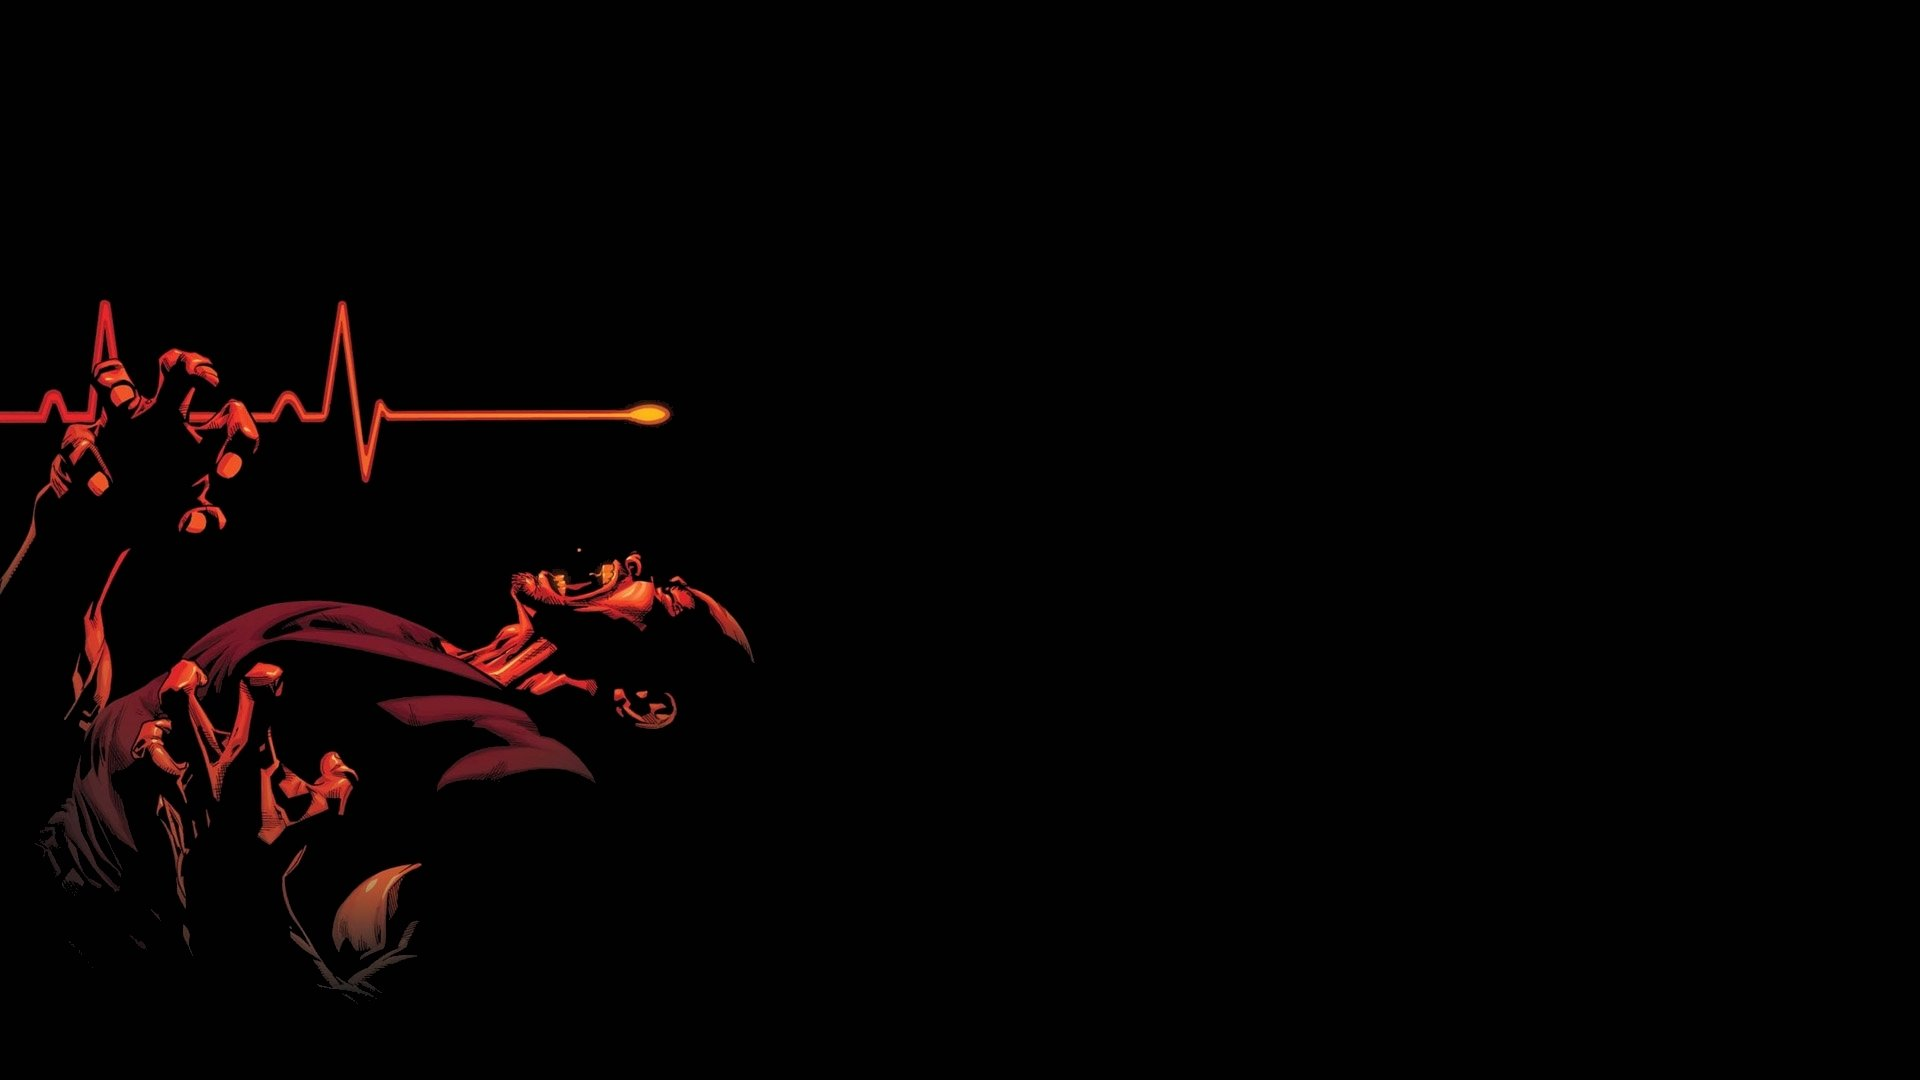 New avengers full hd wallpaper and background image - Avengers hd wallpapers free download ...